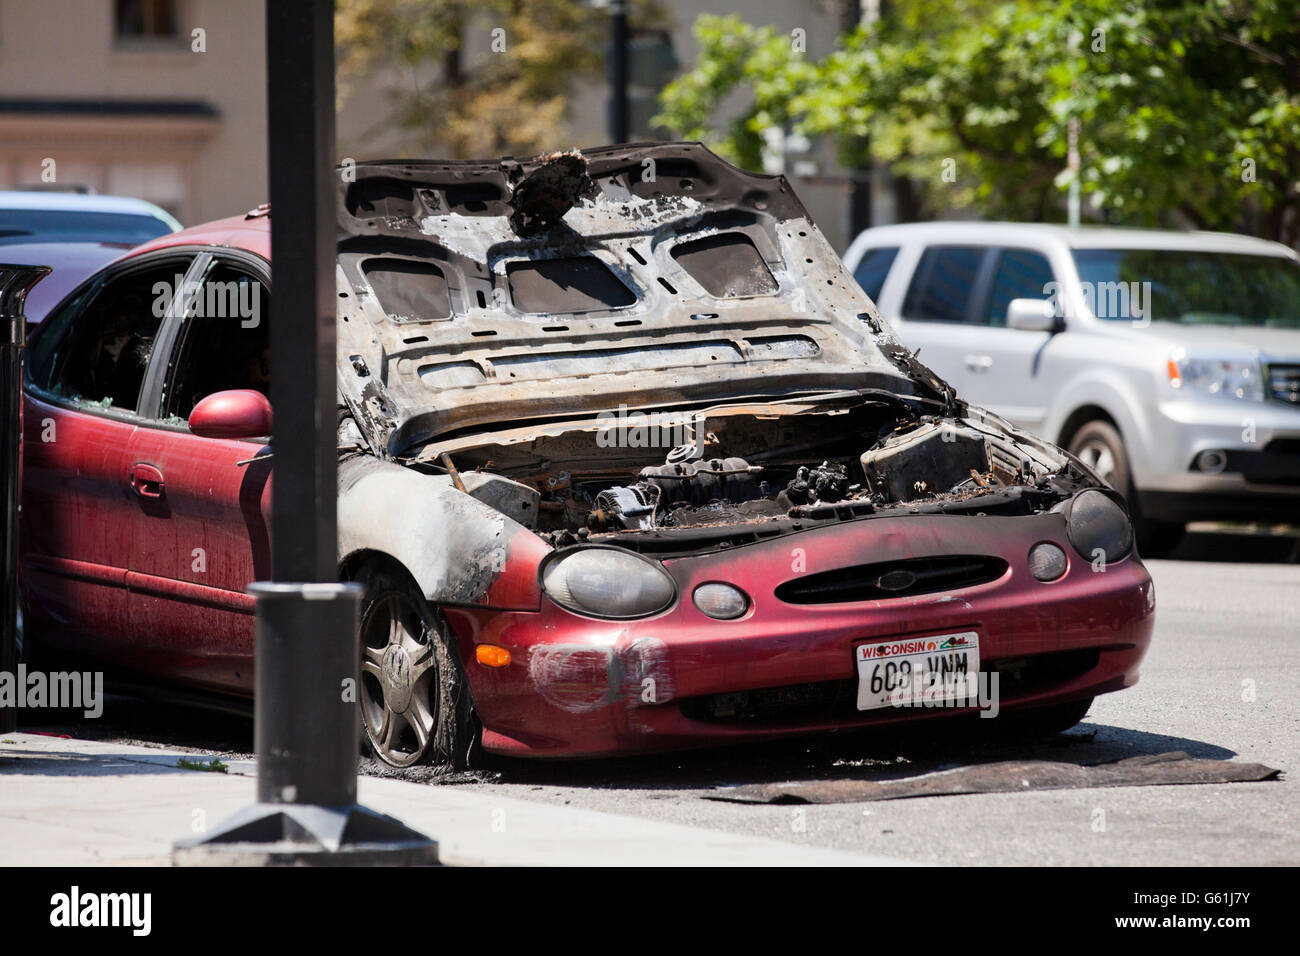 Fire damaged car parked on road - USA - Stock Image